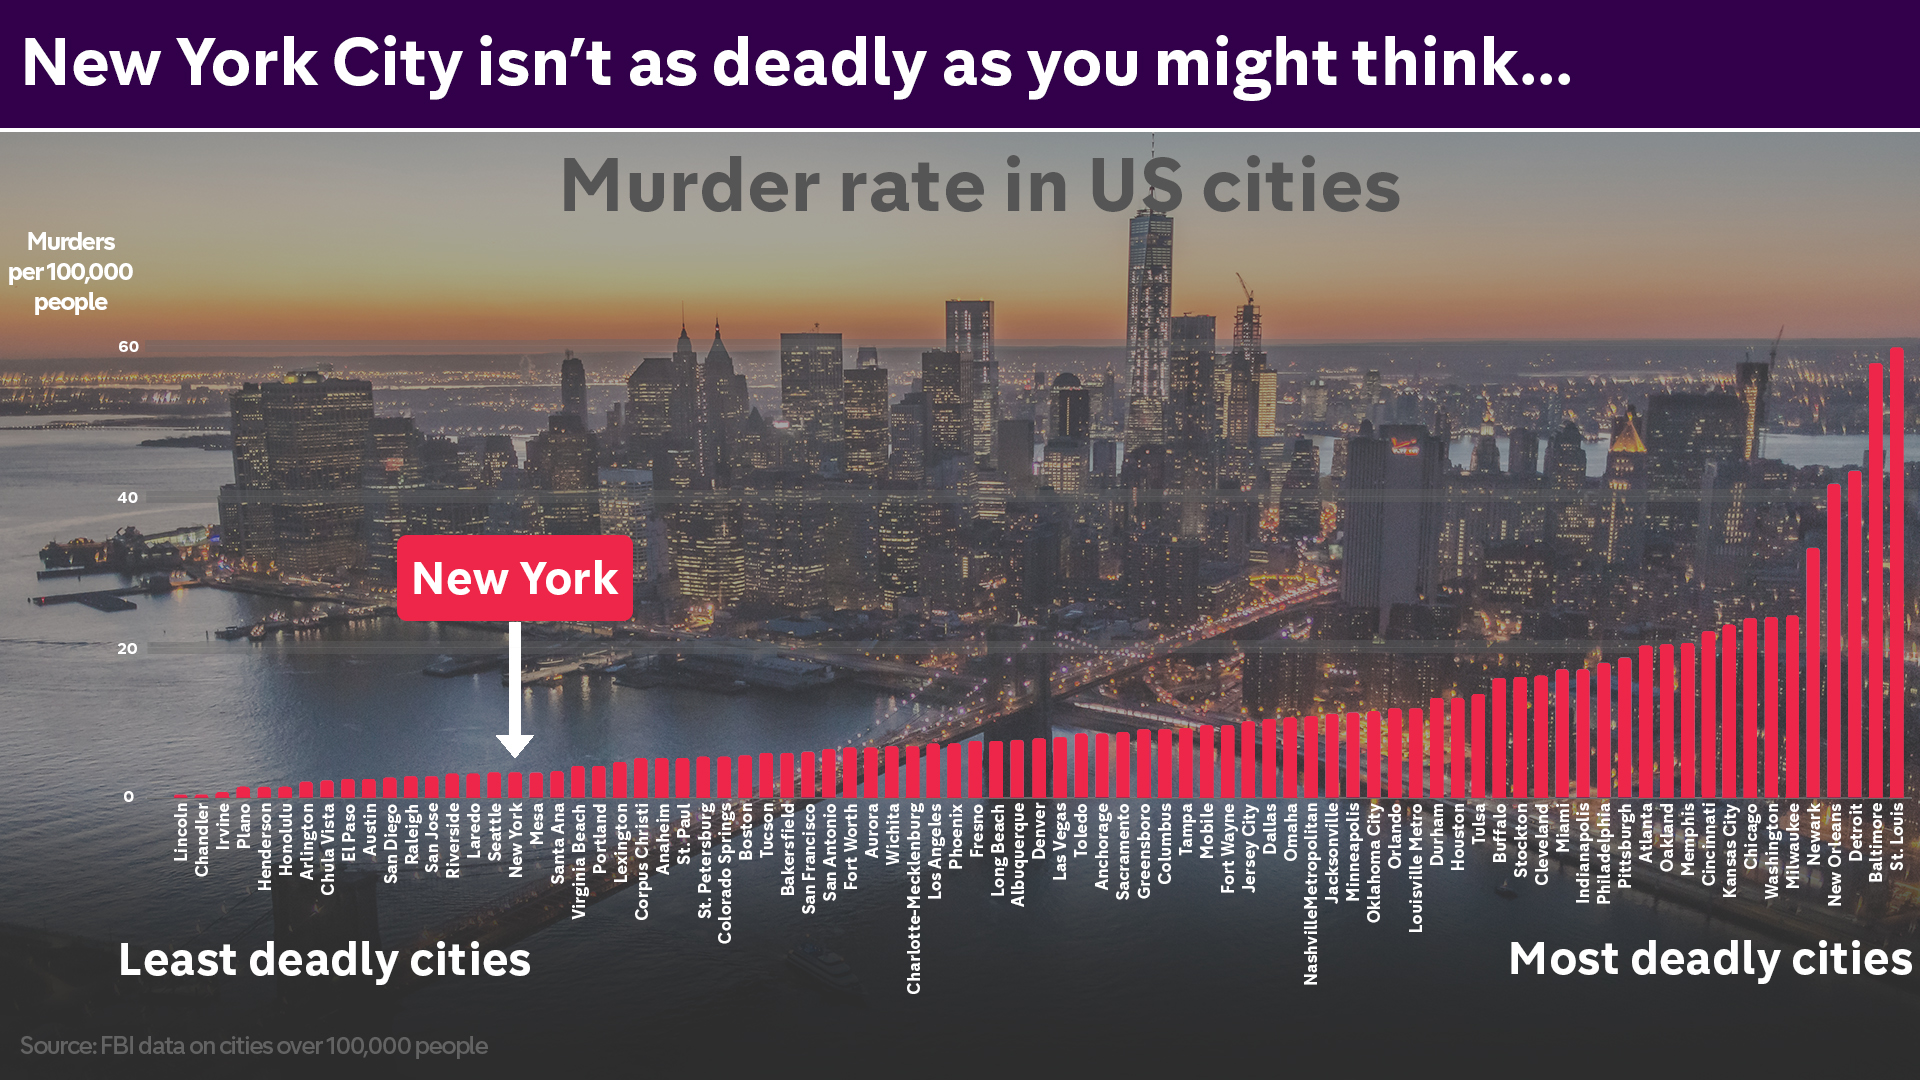 FactCheck: Is London really deadlier than New York? – Channel 4 News